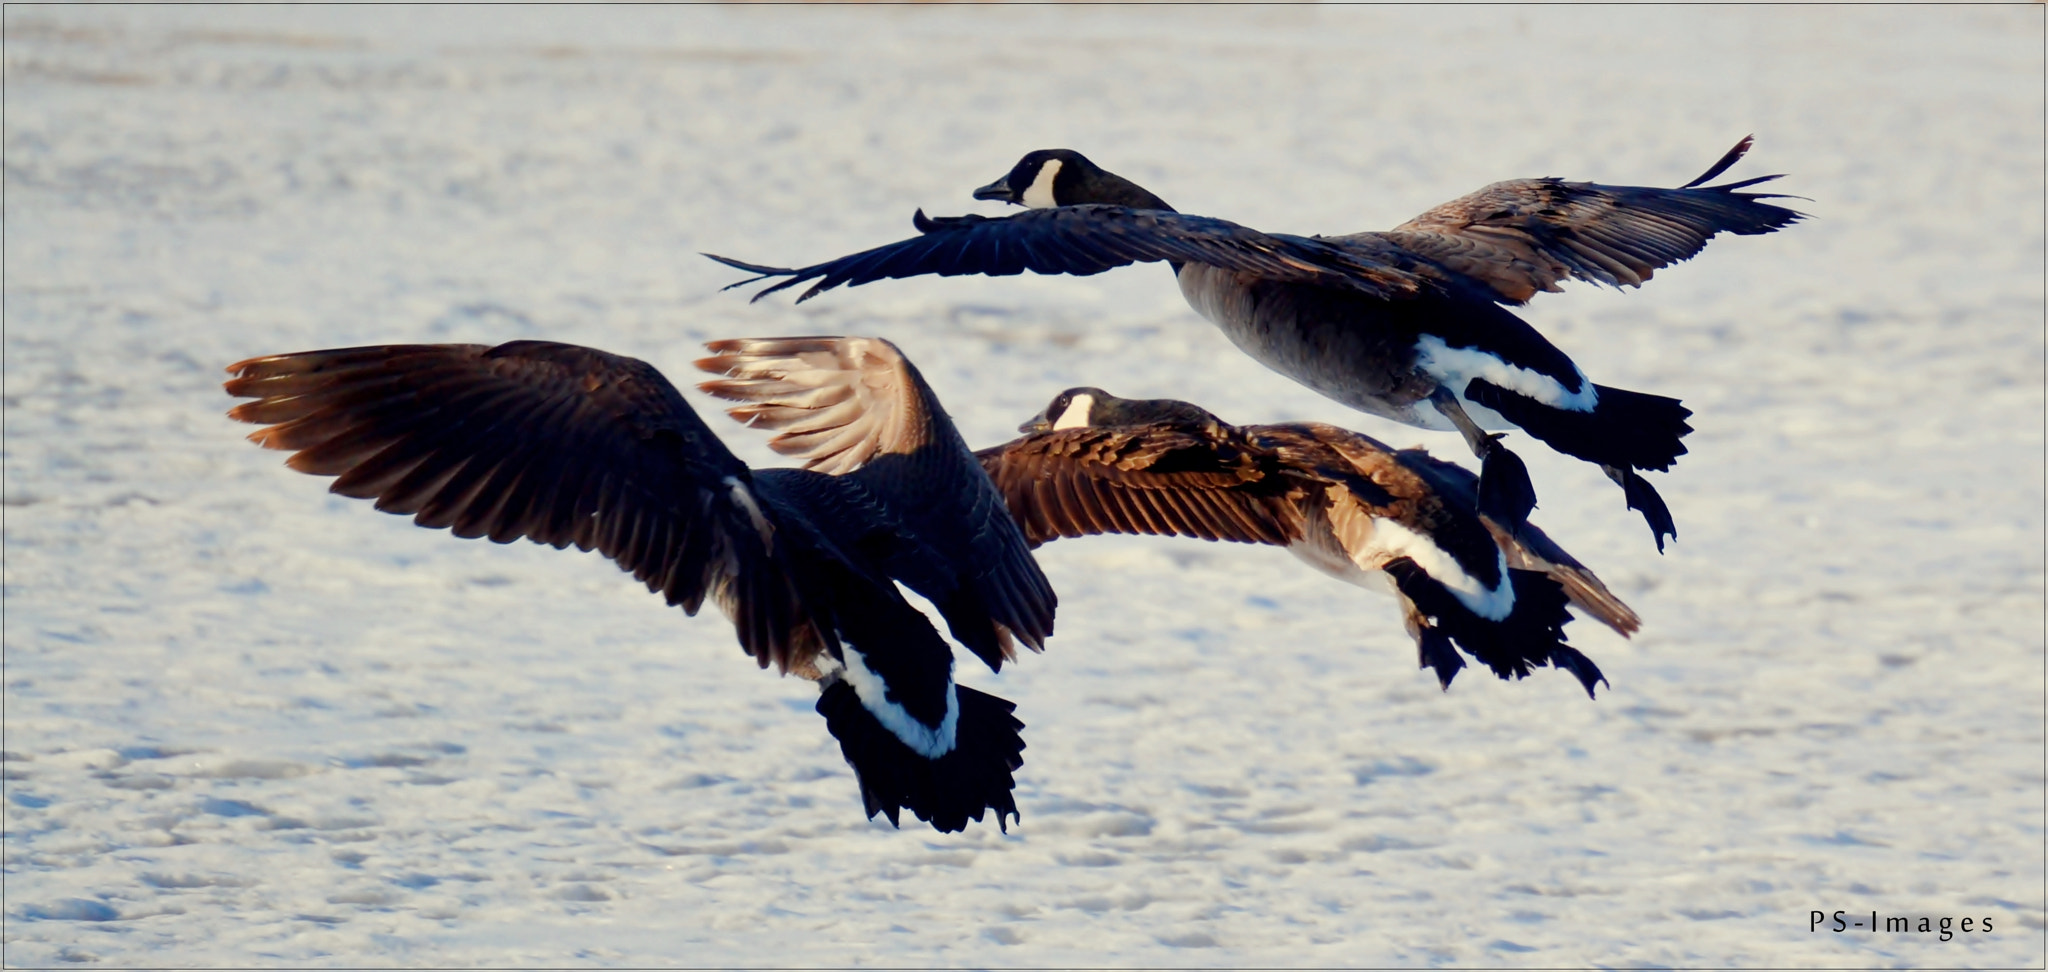 Photograph flying Birds  by prince sharma on 500px